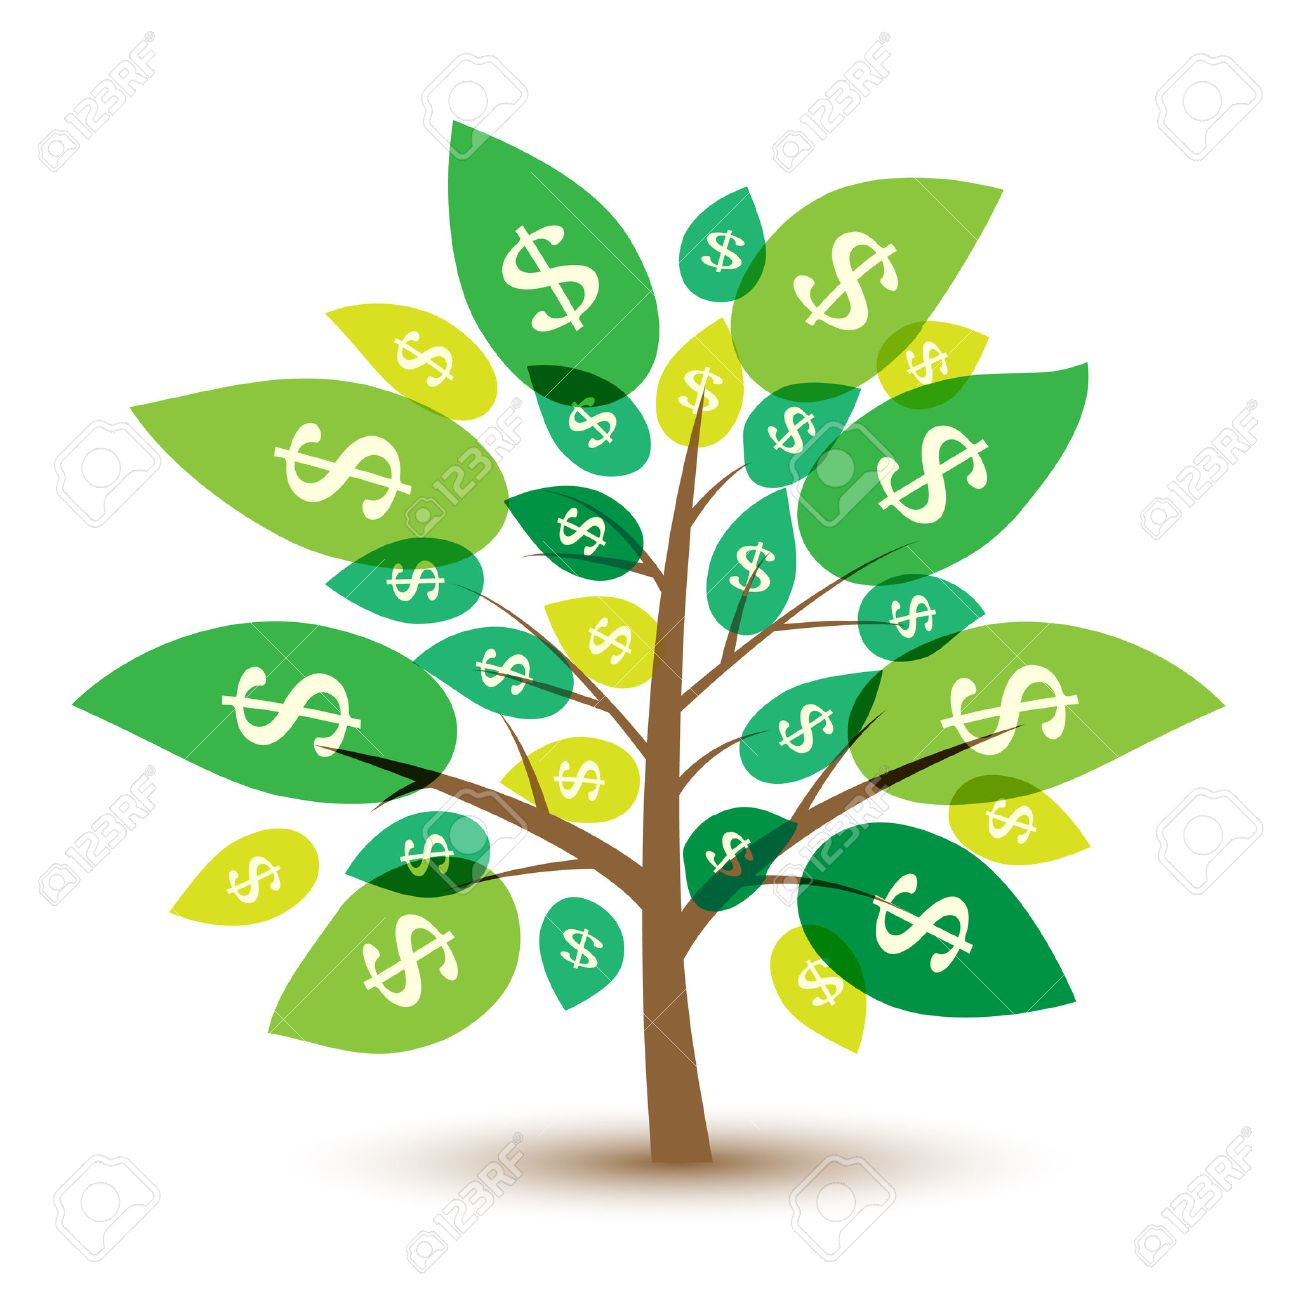 Icon money tree with leaves in dollars. Vector Illustration. Standard-Bild - 41973347